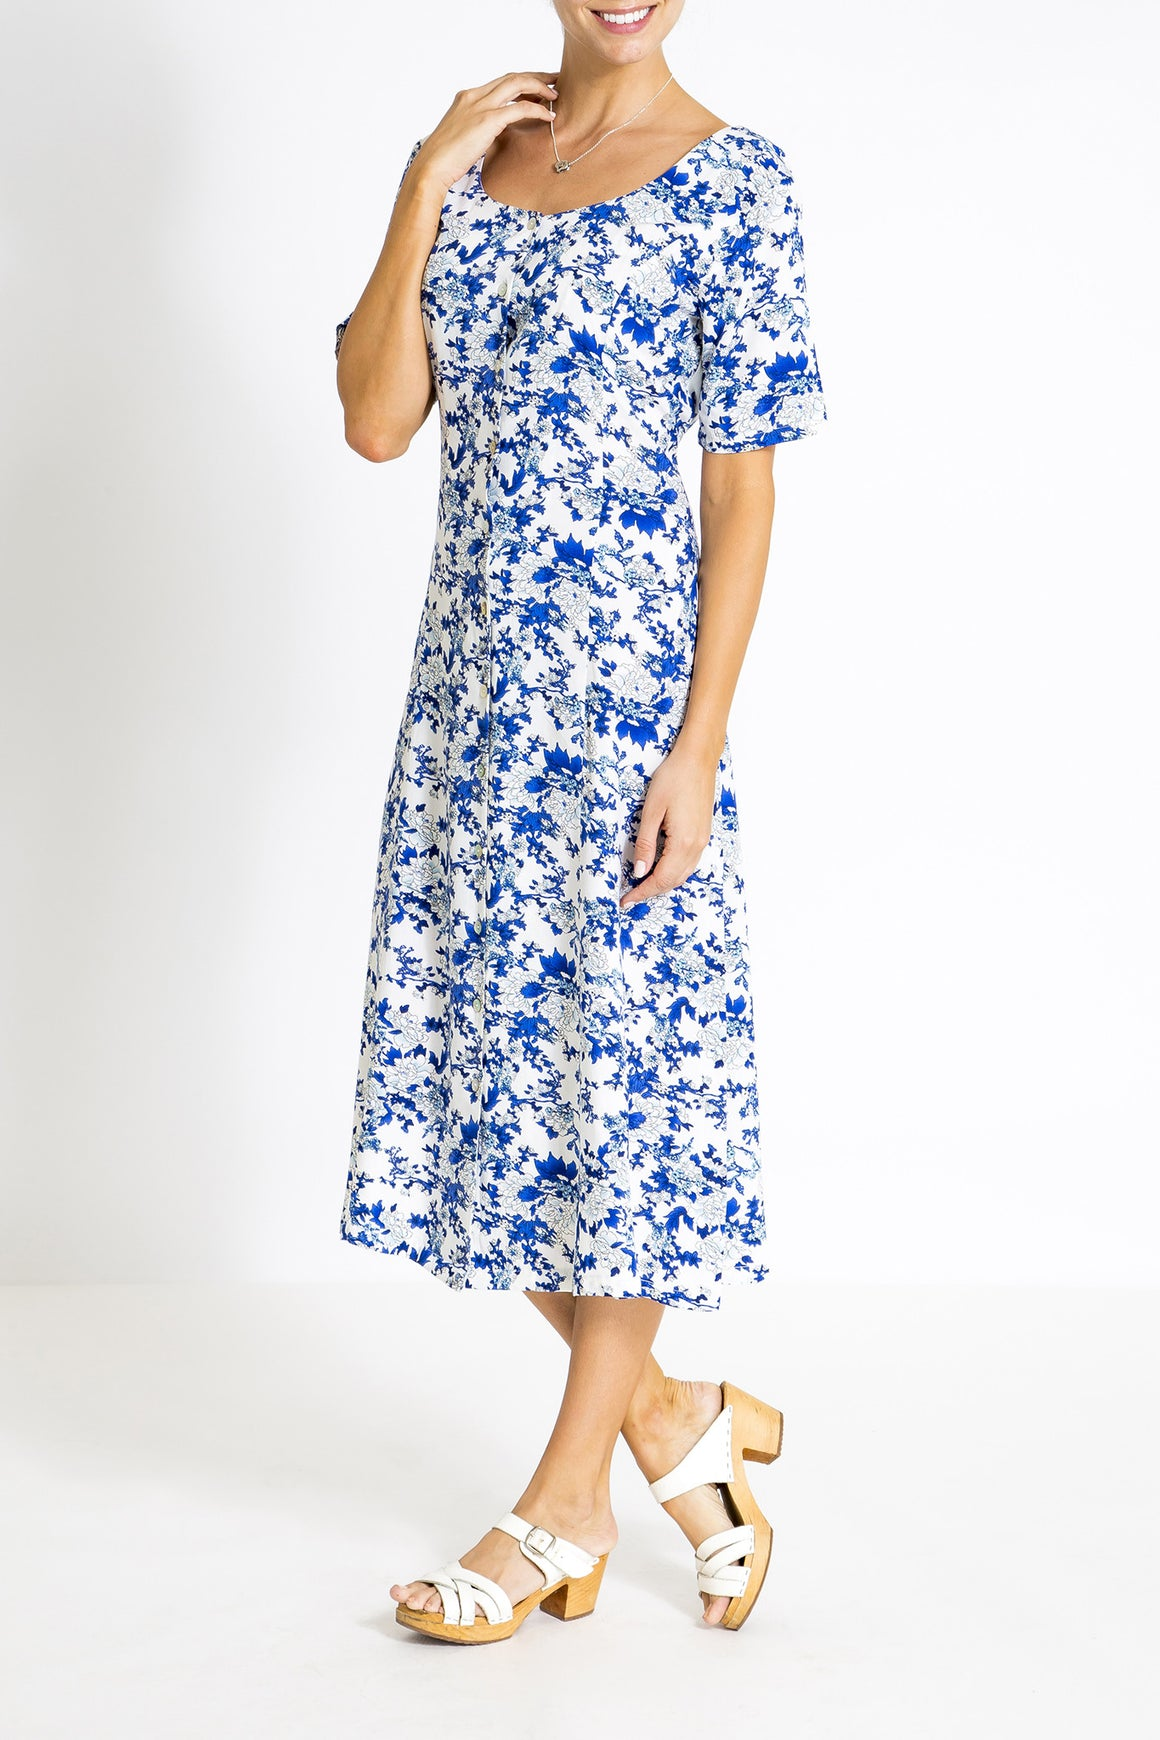 Summer Days Dress - Blue China